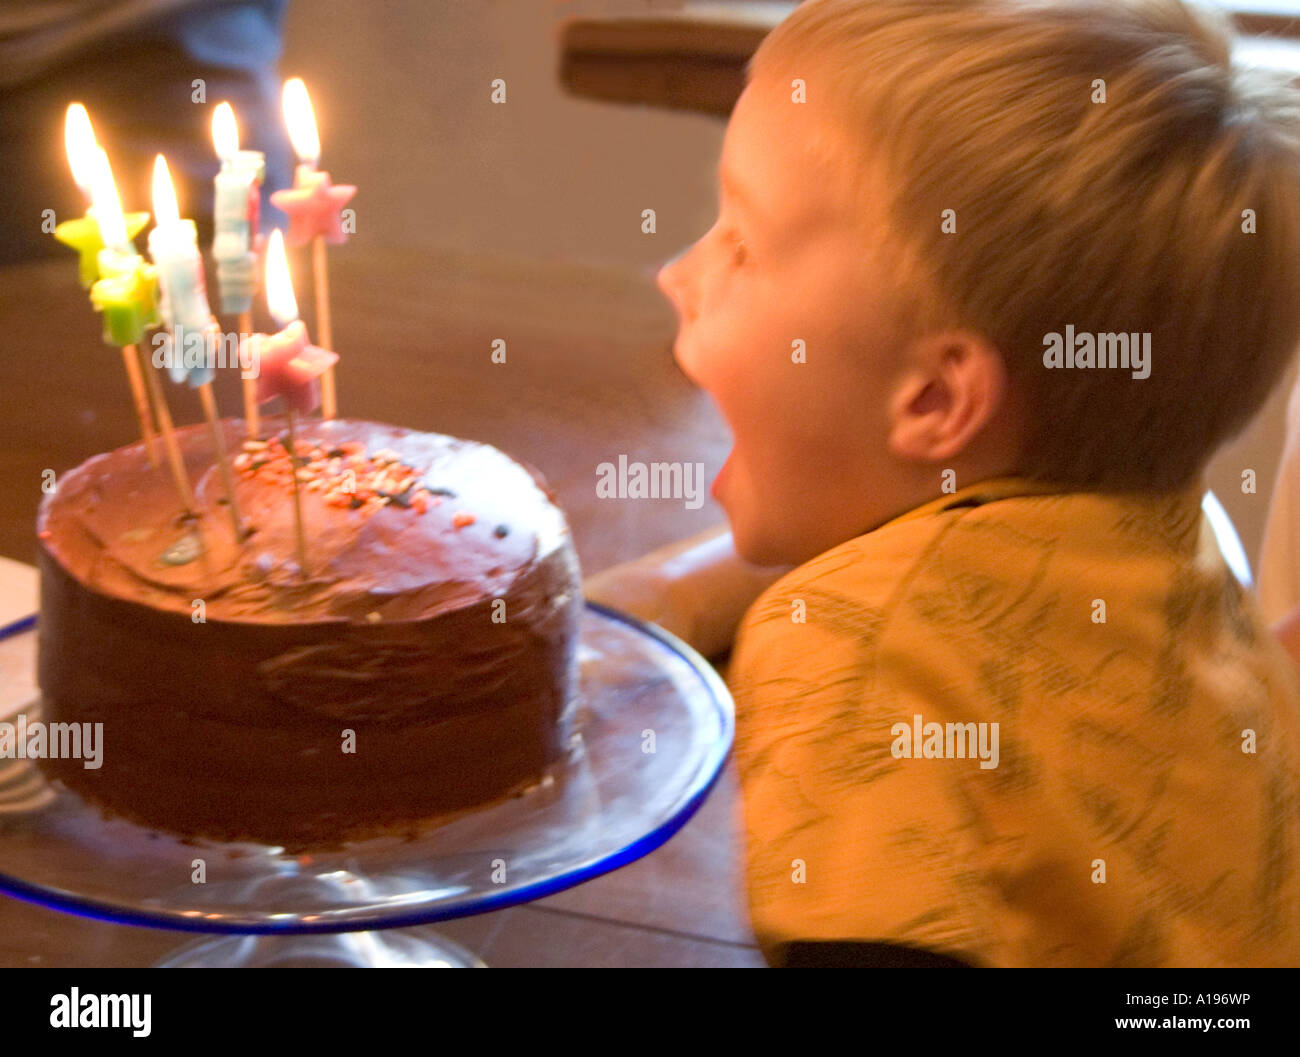 Five Year Old Boy Blowing Out Birthday Candles St Paul Minnesota MN USA